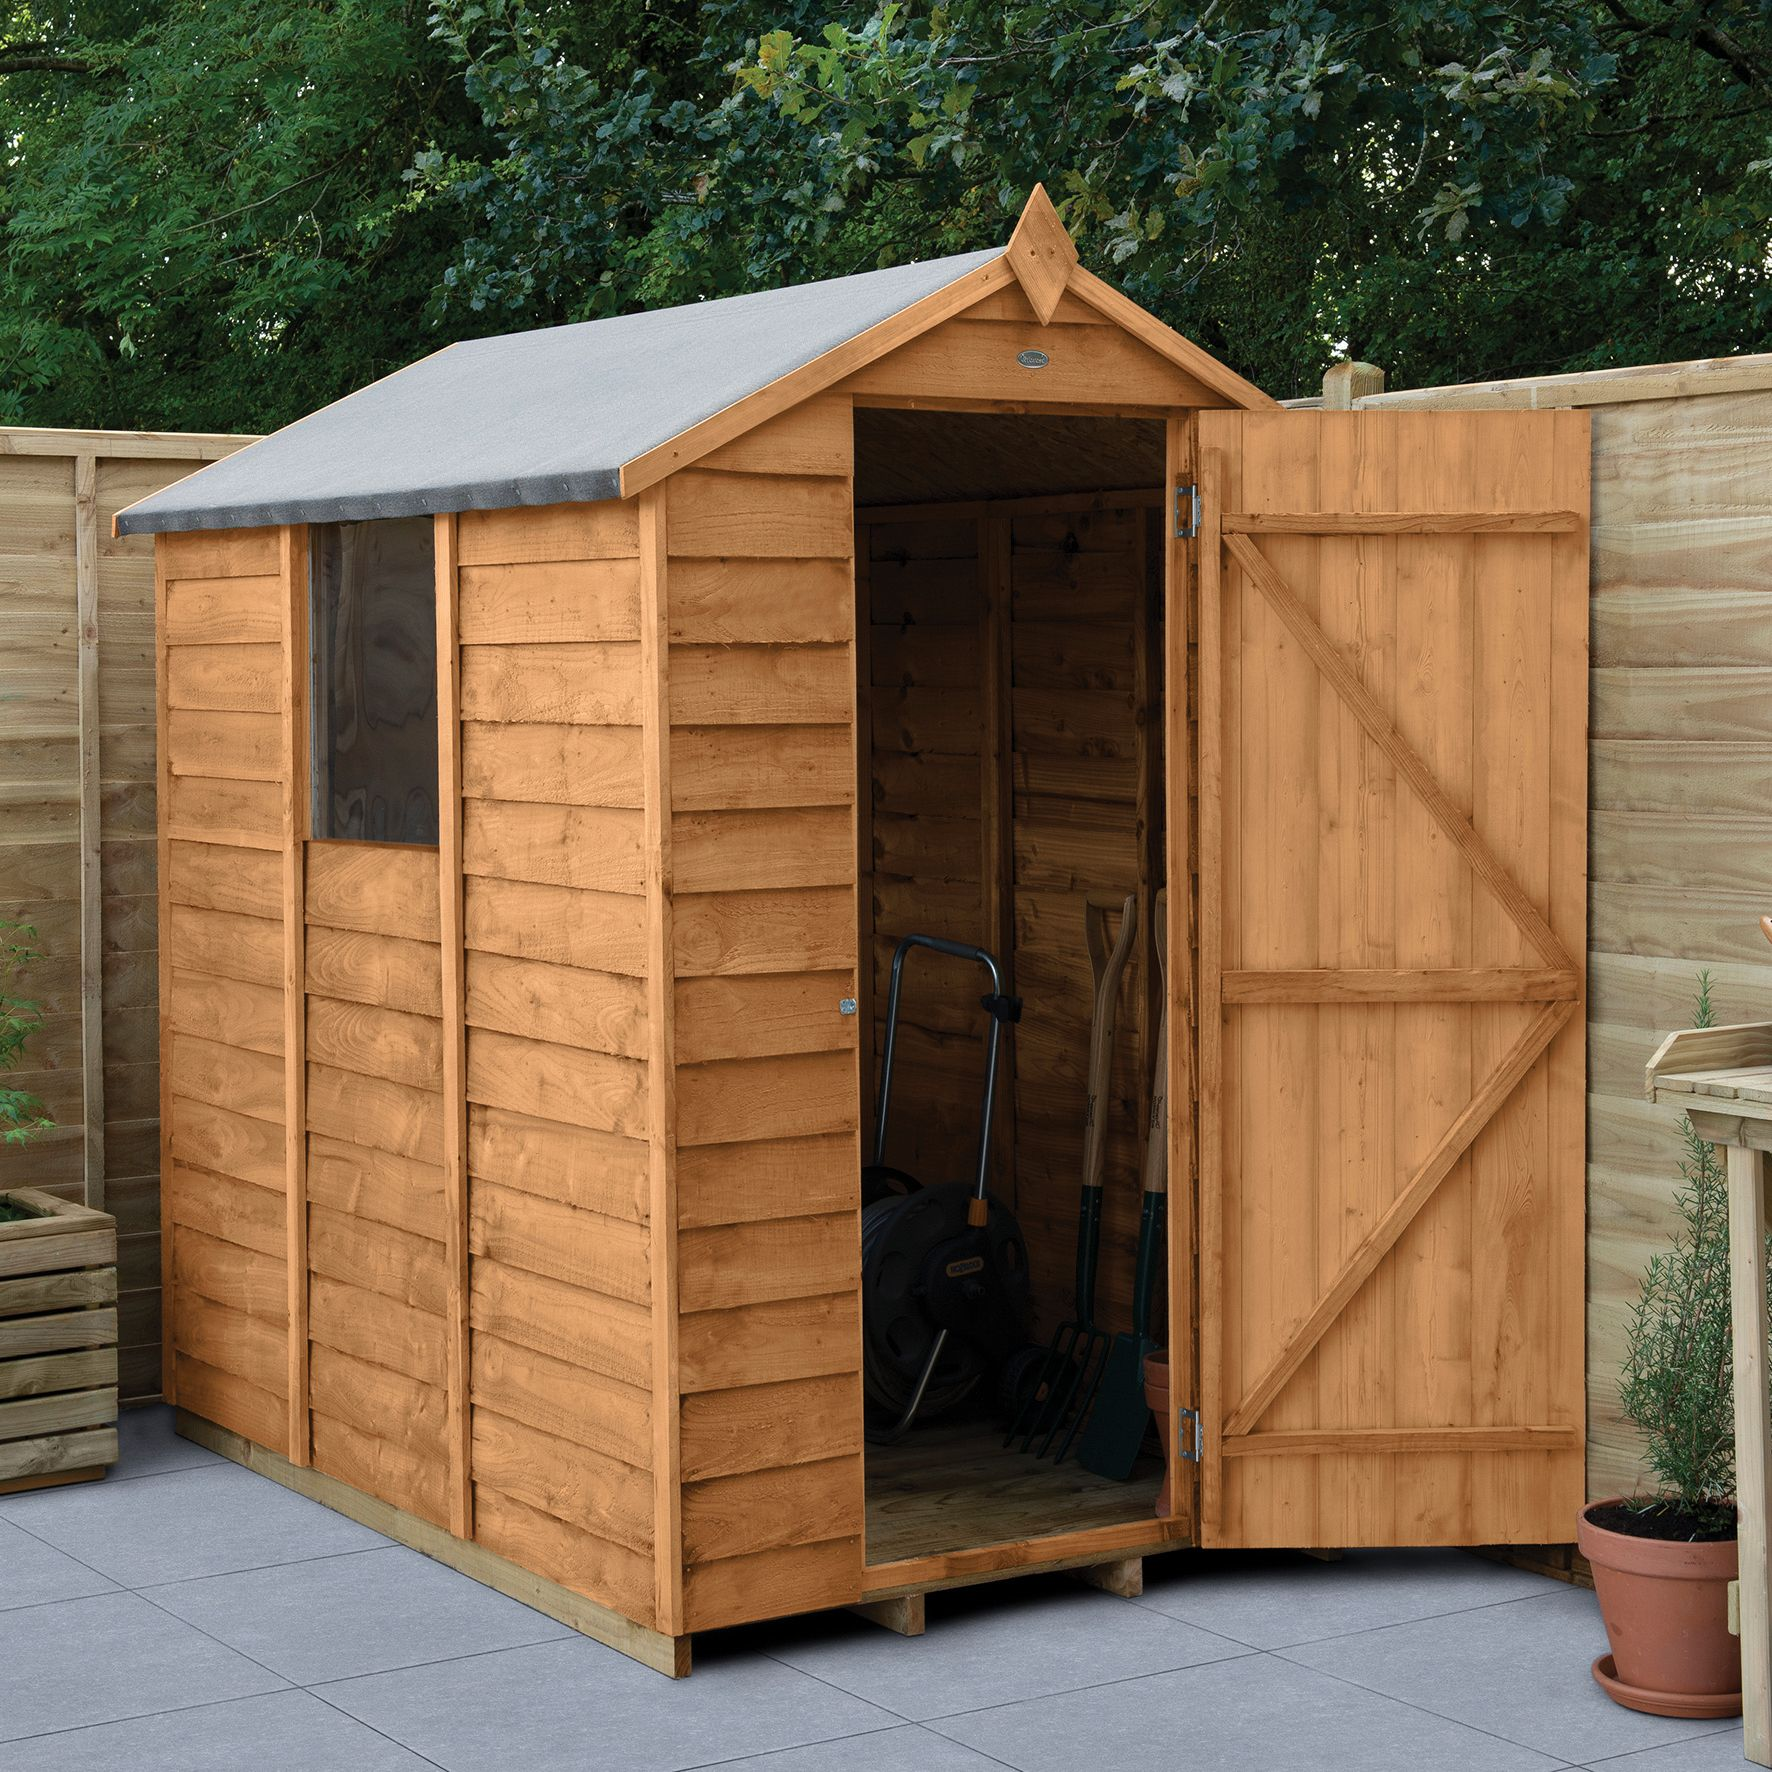 Cheap Sheds Sales and offers for the cheapest garden sheds from